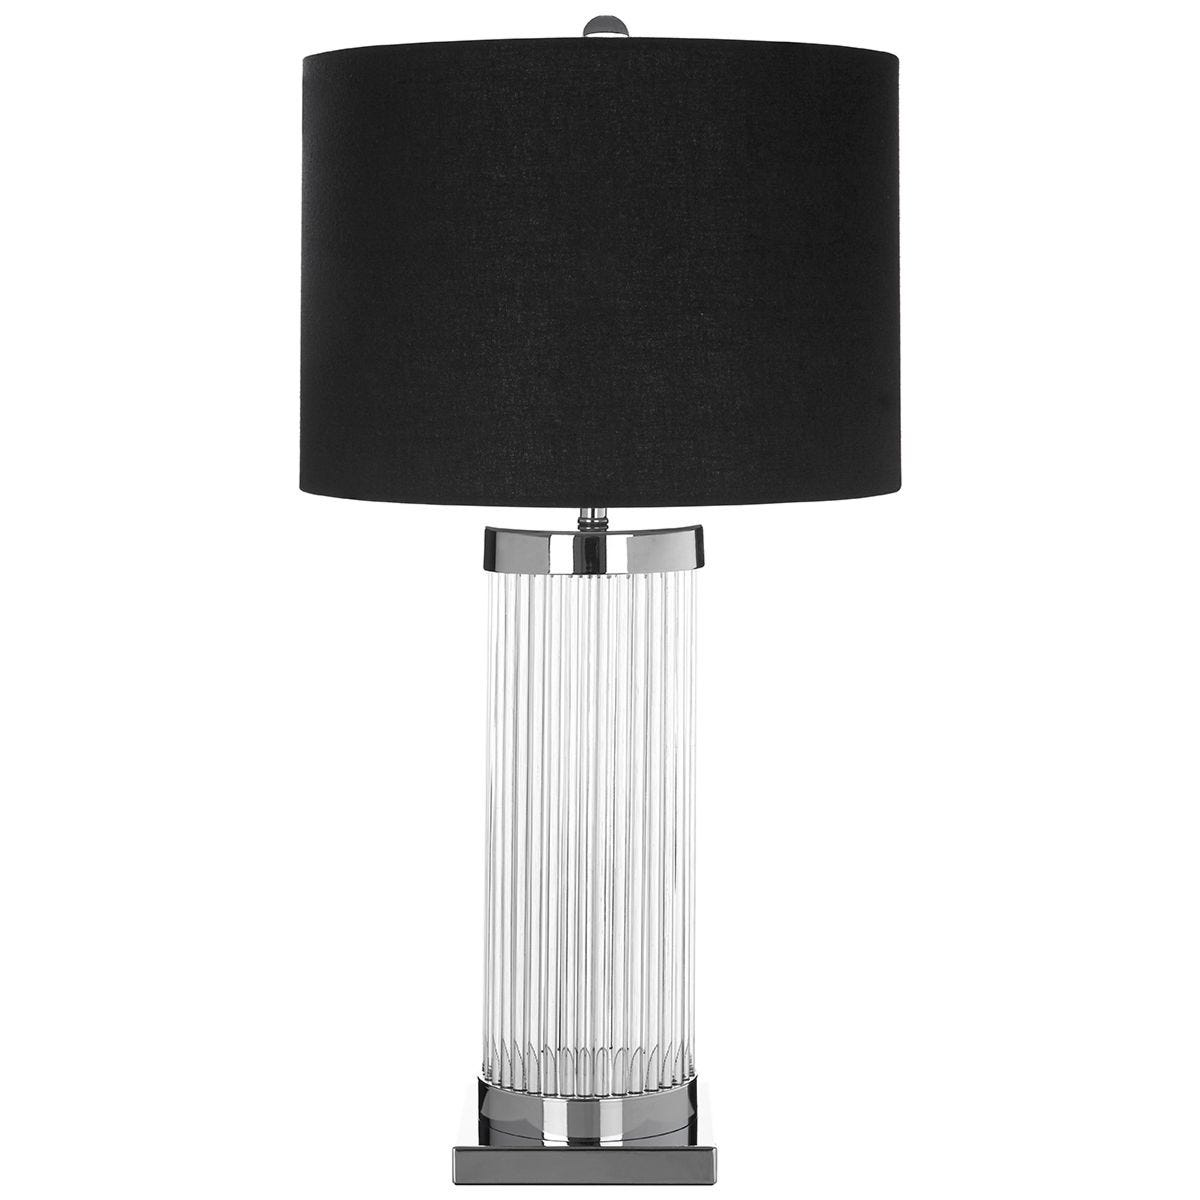 Premier Housewares Lily Table Lamp with Black Shade